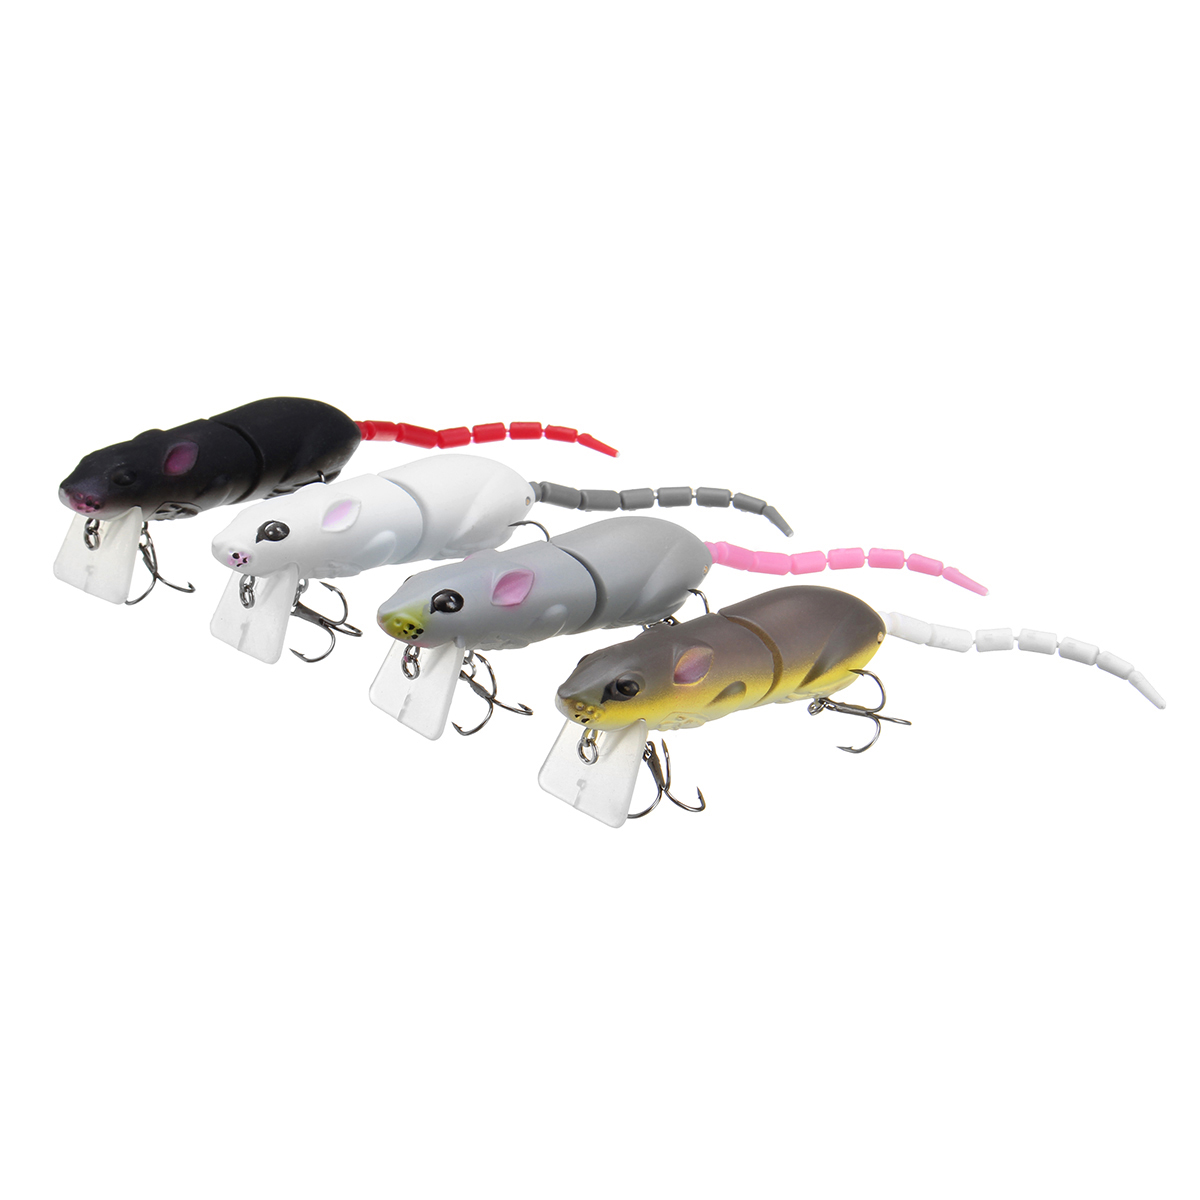 25cm 15.5g Jointed Rat Fishing Lure Mouse Floating Crankbait Sea Topwater 3D Eyes Artificial Baits